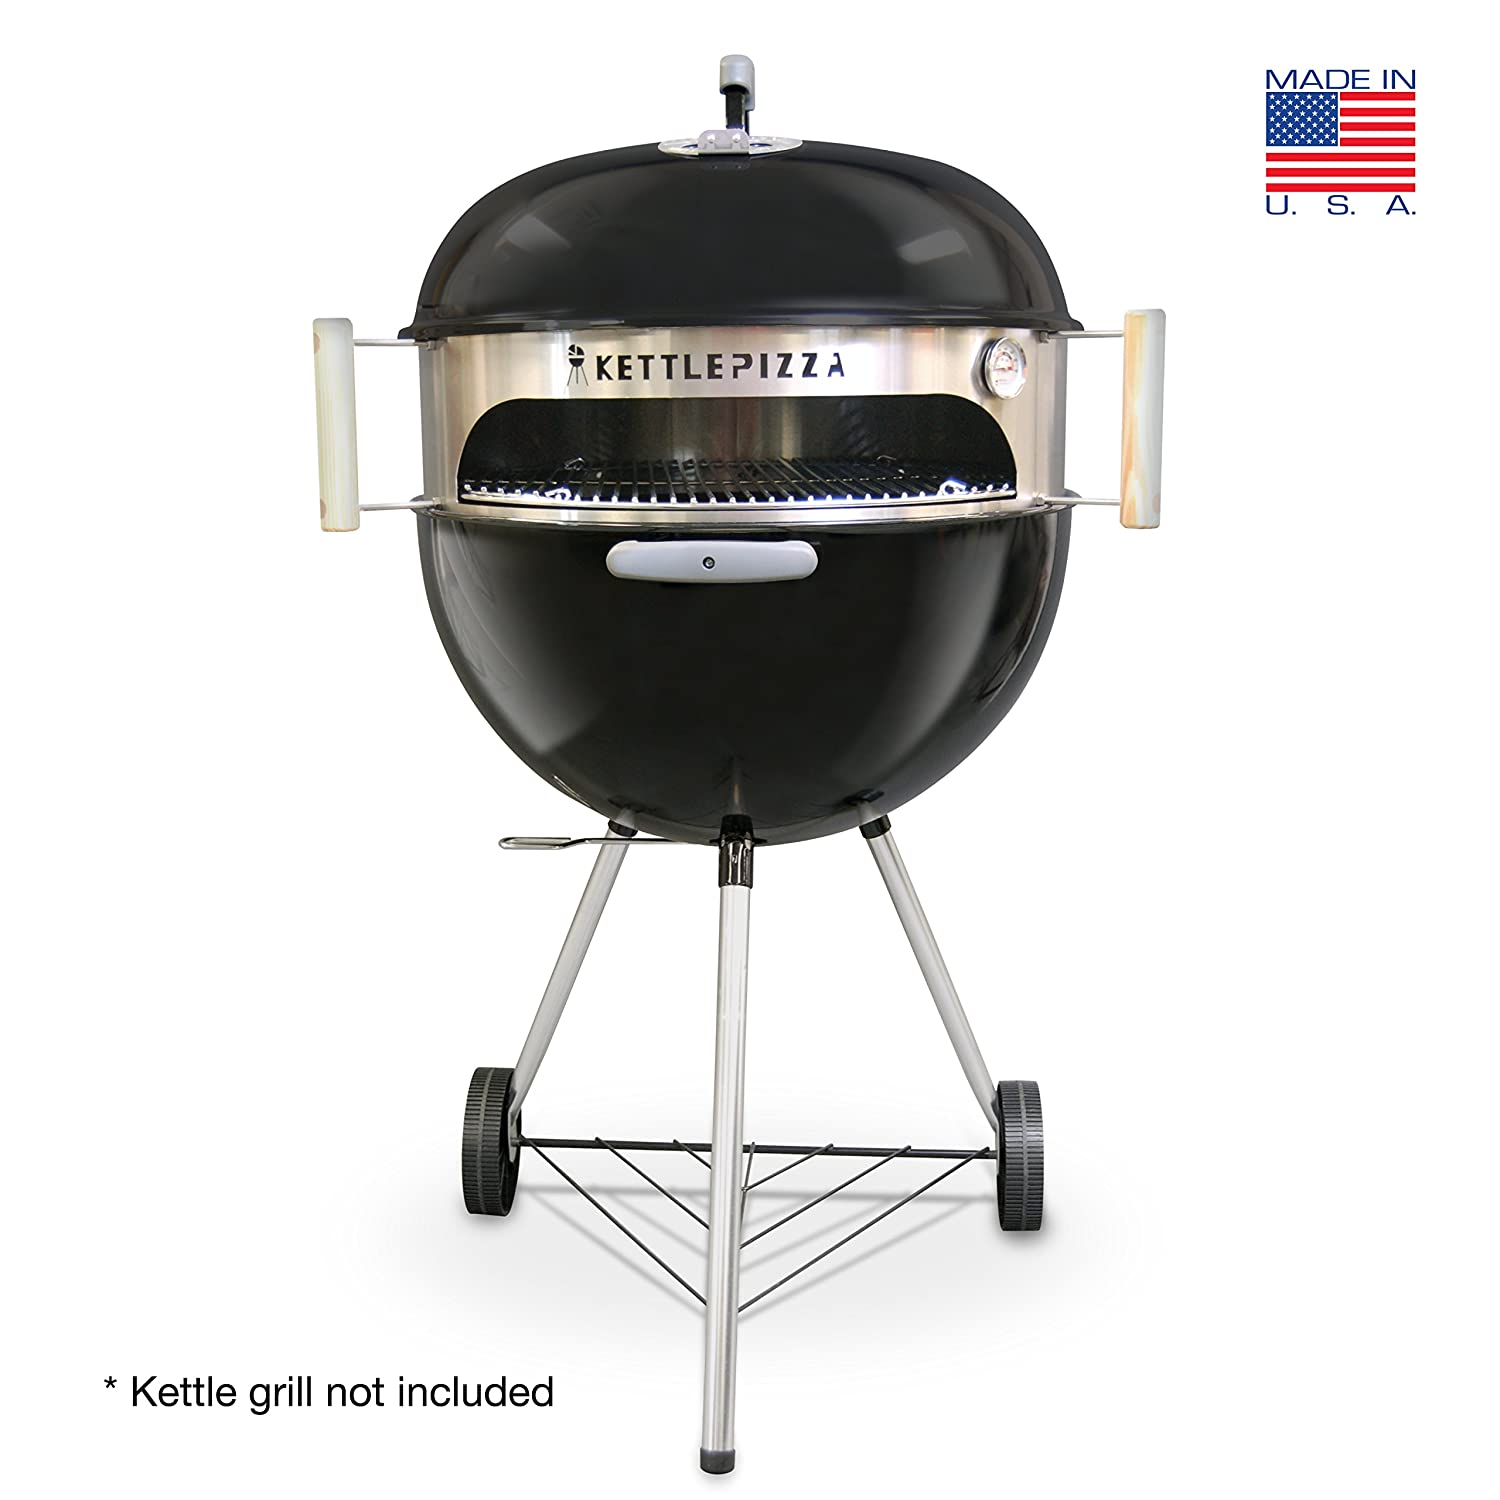 amazon com made in usa kettlepizza basic pizza oven kit for 18 5